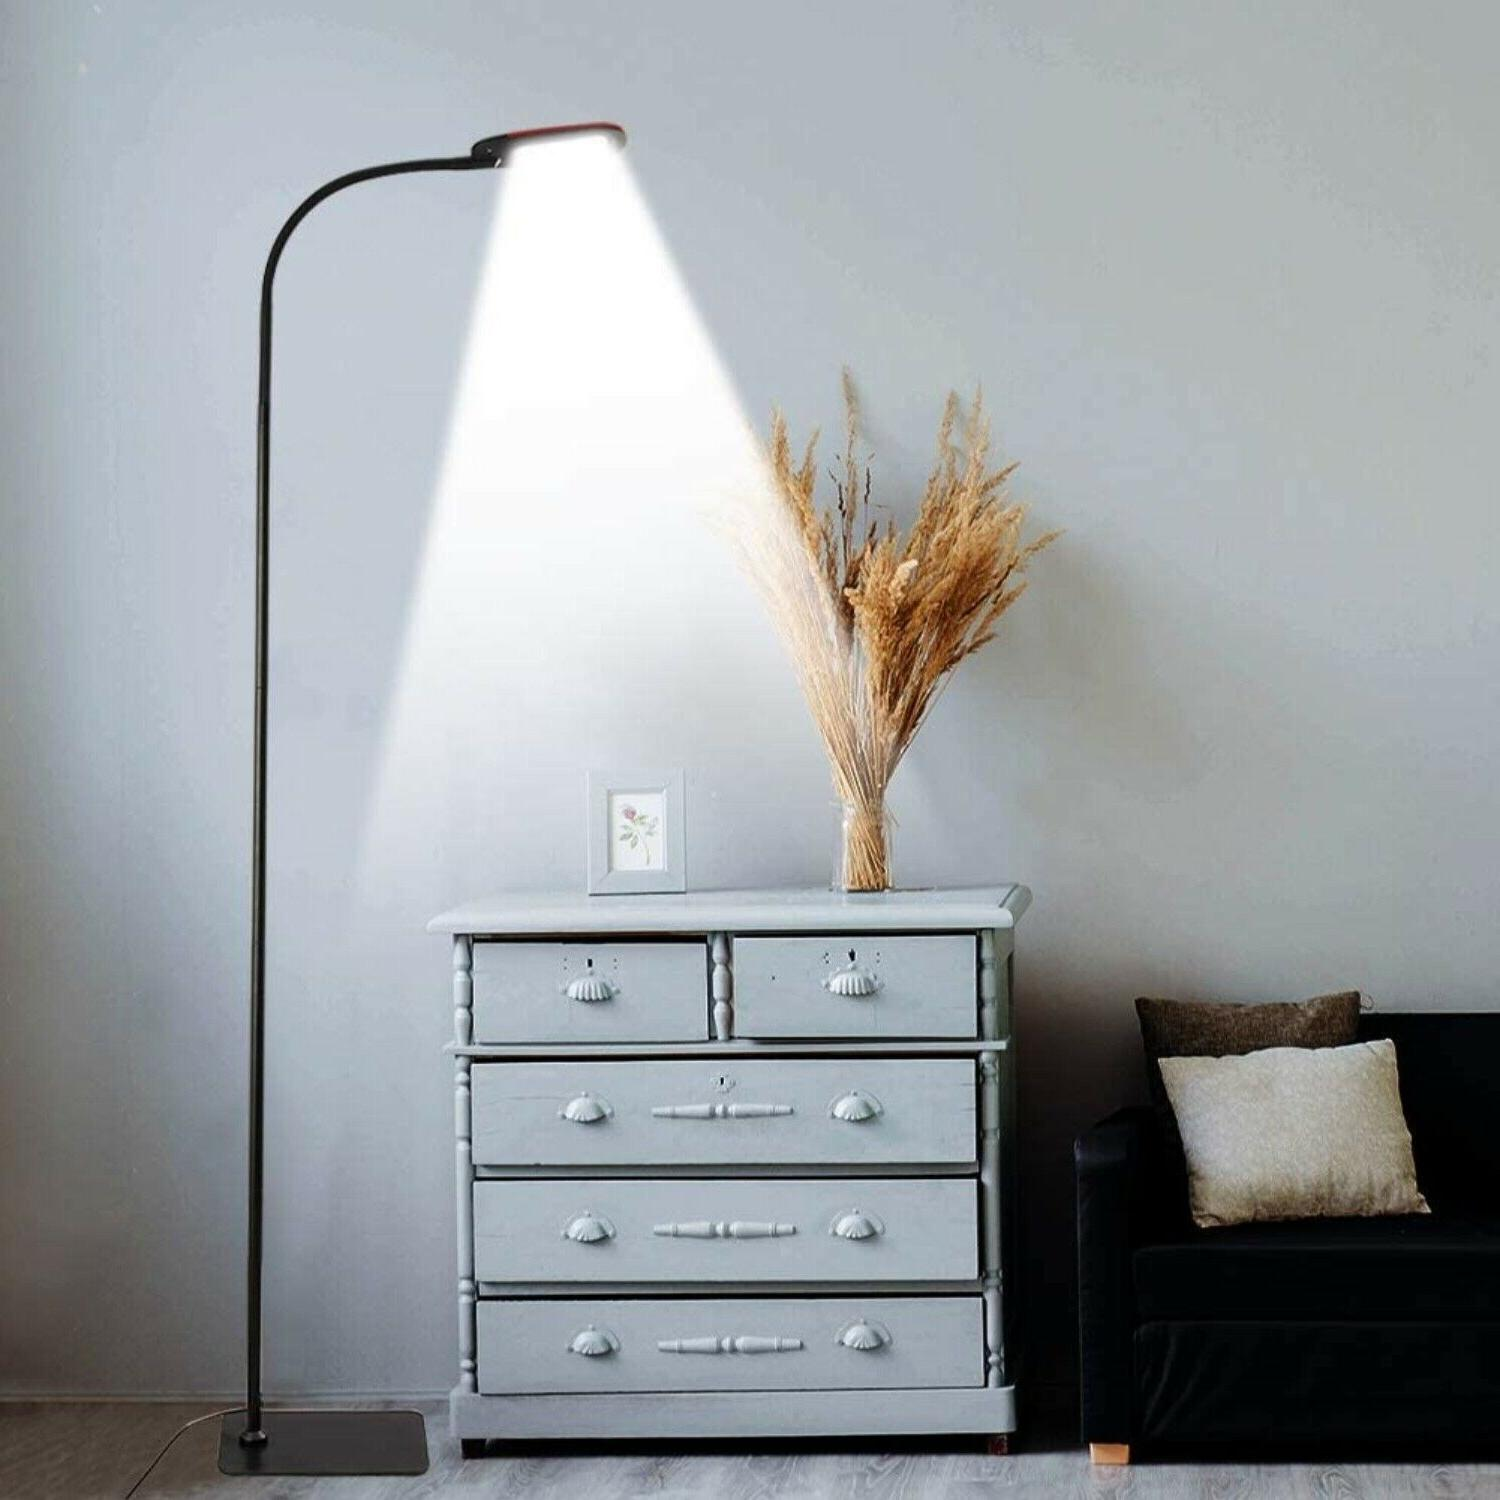 Lamp Dimmable LED Lamp, for L